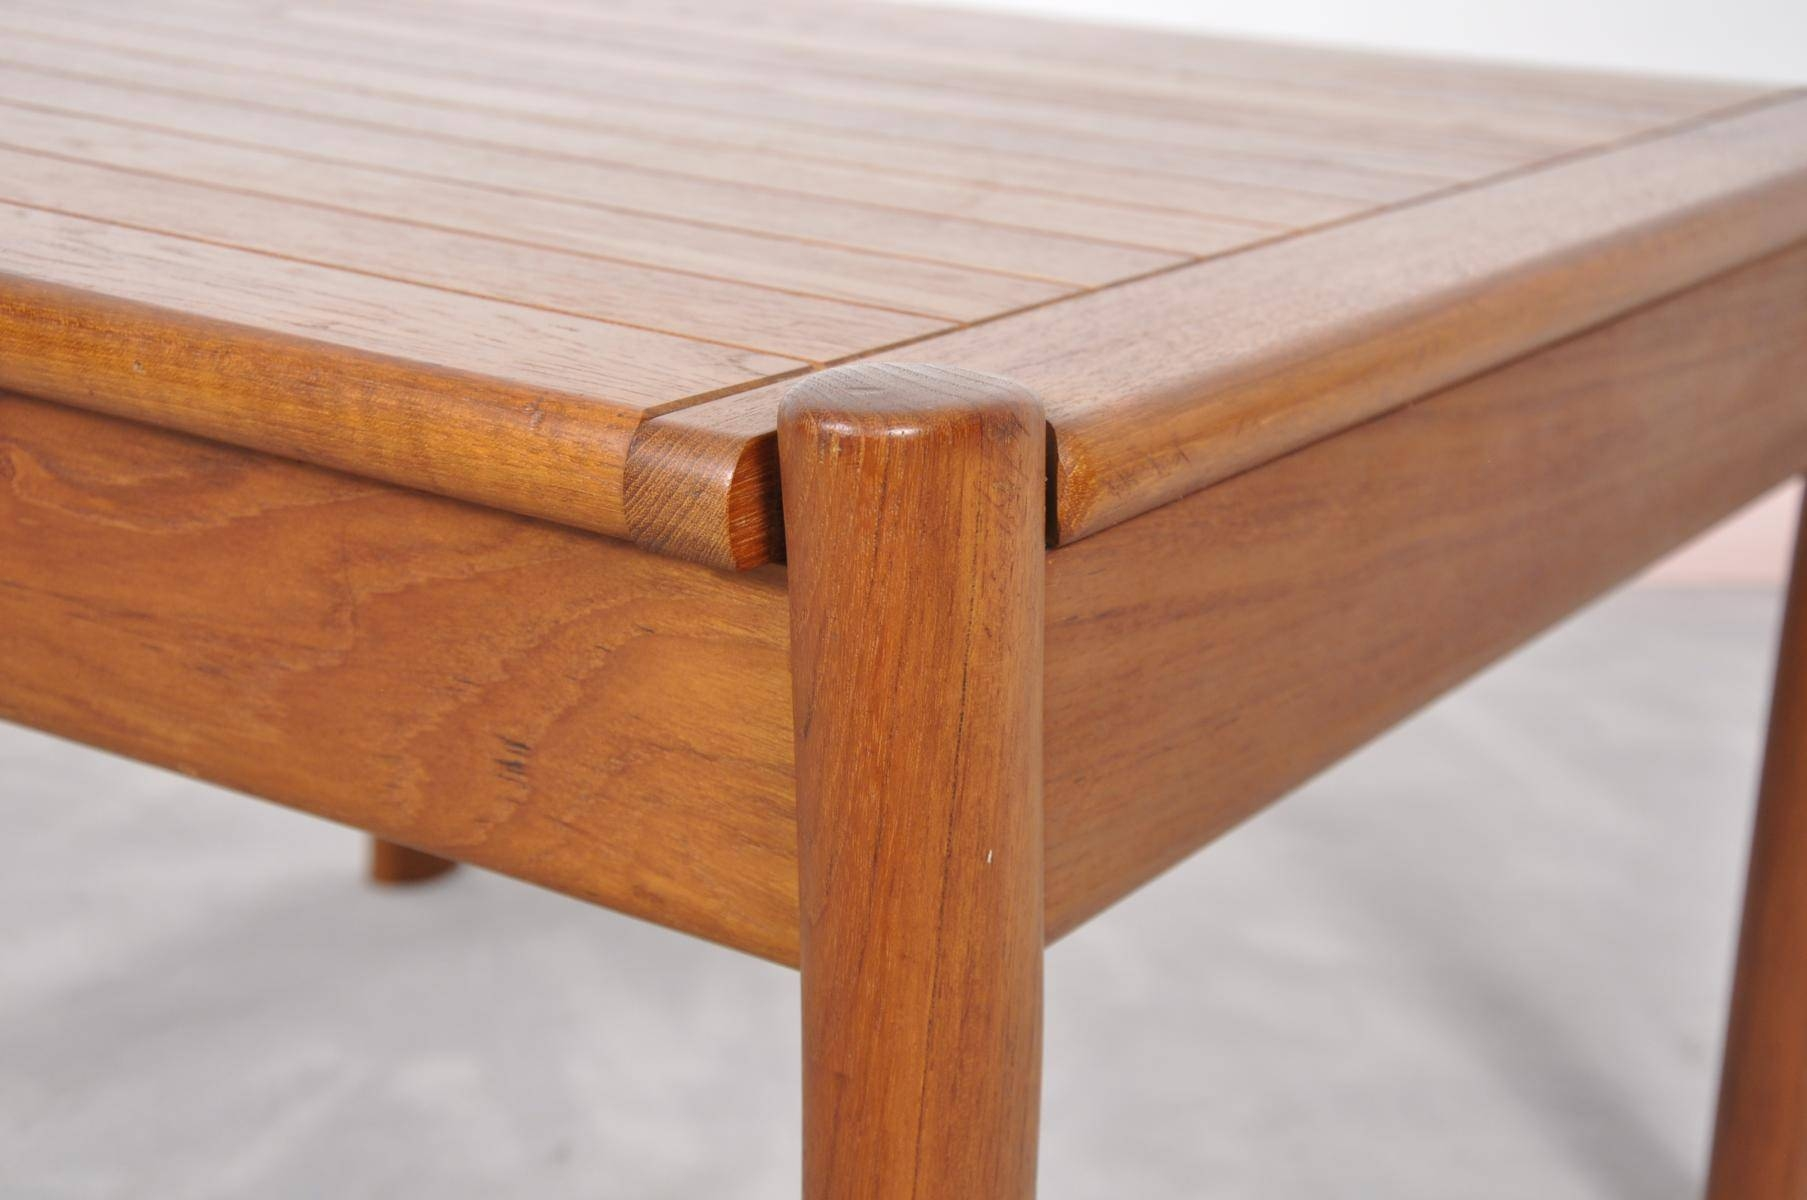 Vintage Danish Teak Coffee Table With Rounded Edges For Sale At Pamono throughout Coffee Tables With Rounded Corners (Image 26 of 30)